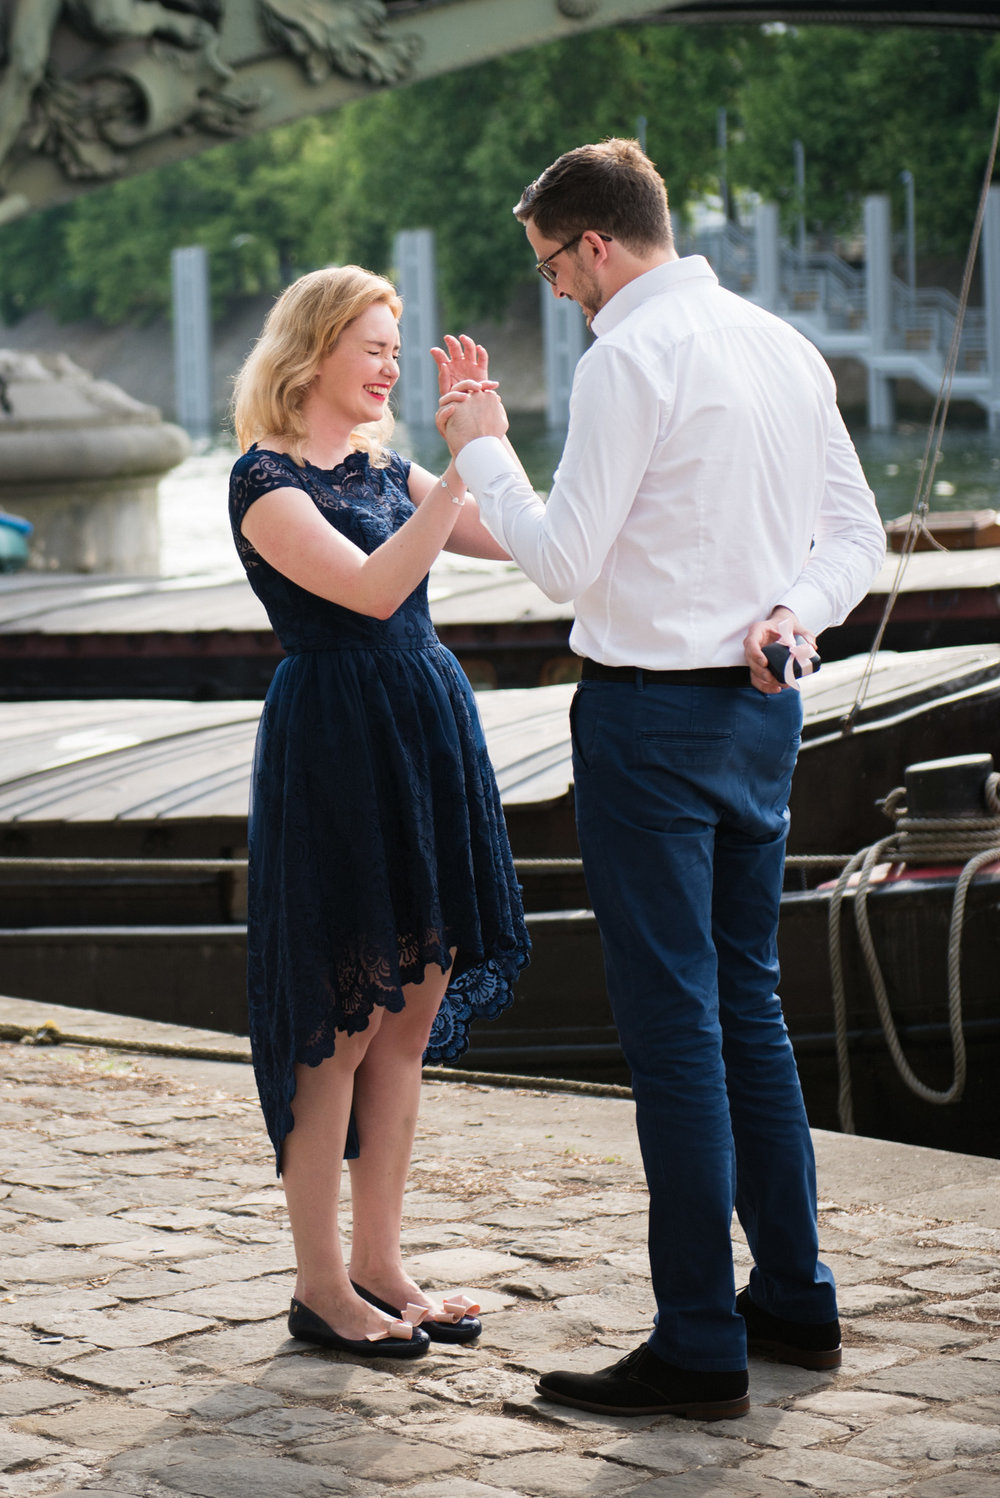 Paris Proposal Photo Session by Paris Photographer Shantha Delaunay.jpg